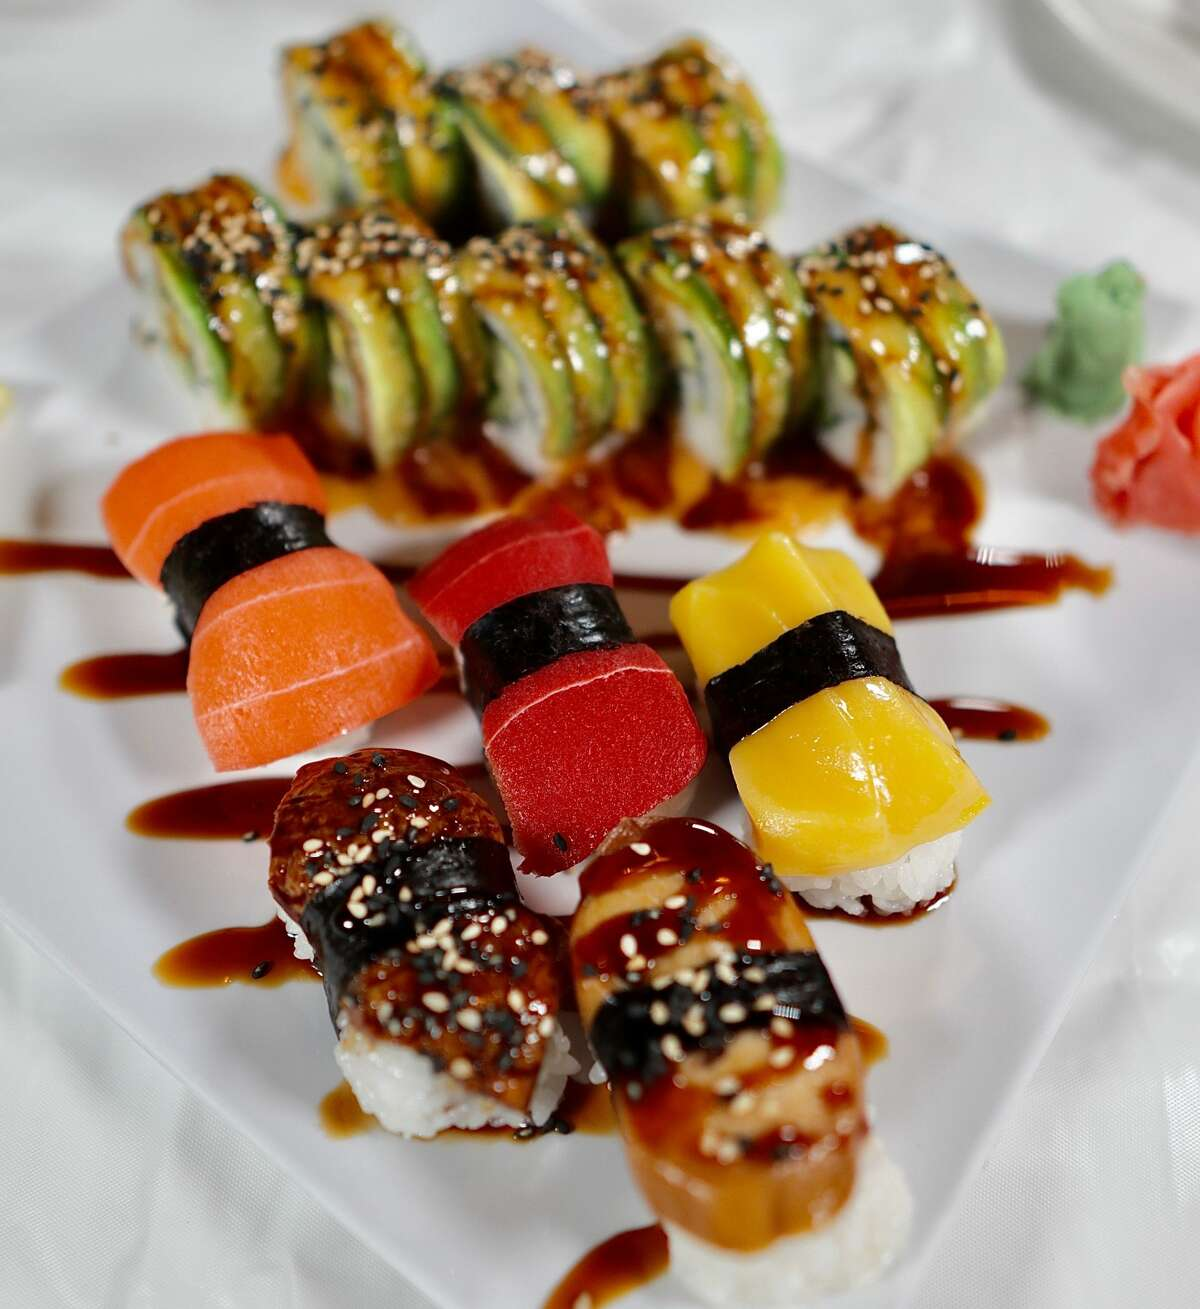 A variety sushi plate from Chef Kenny's Asian Vegan Restaurant.